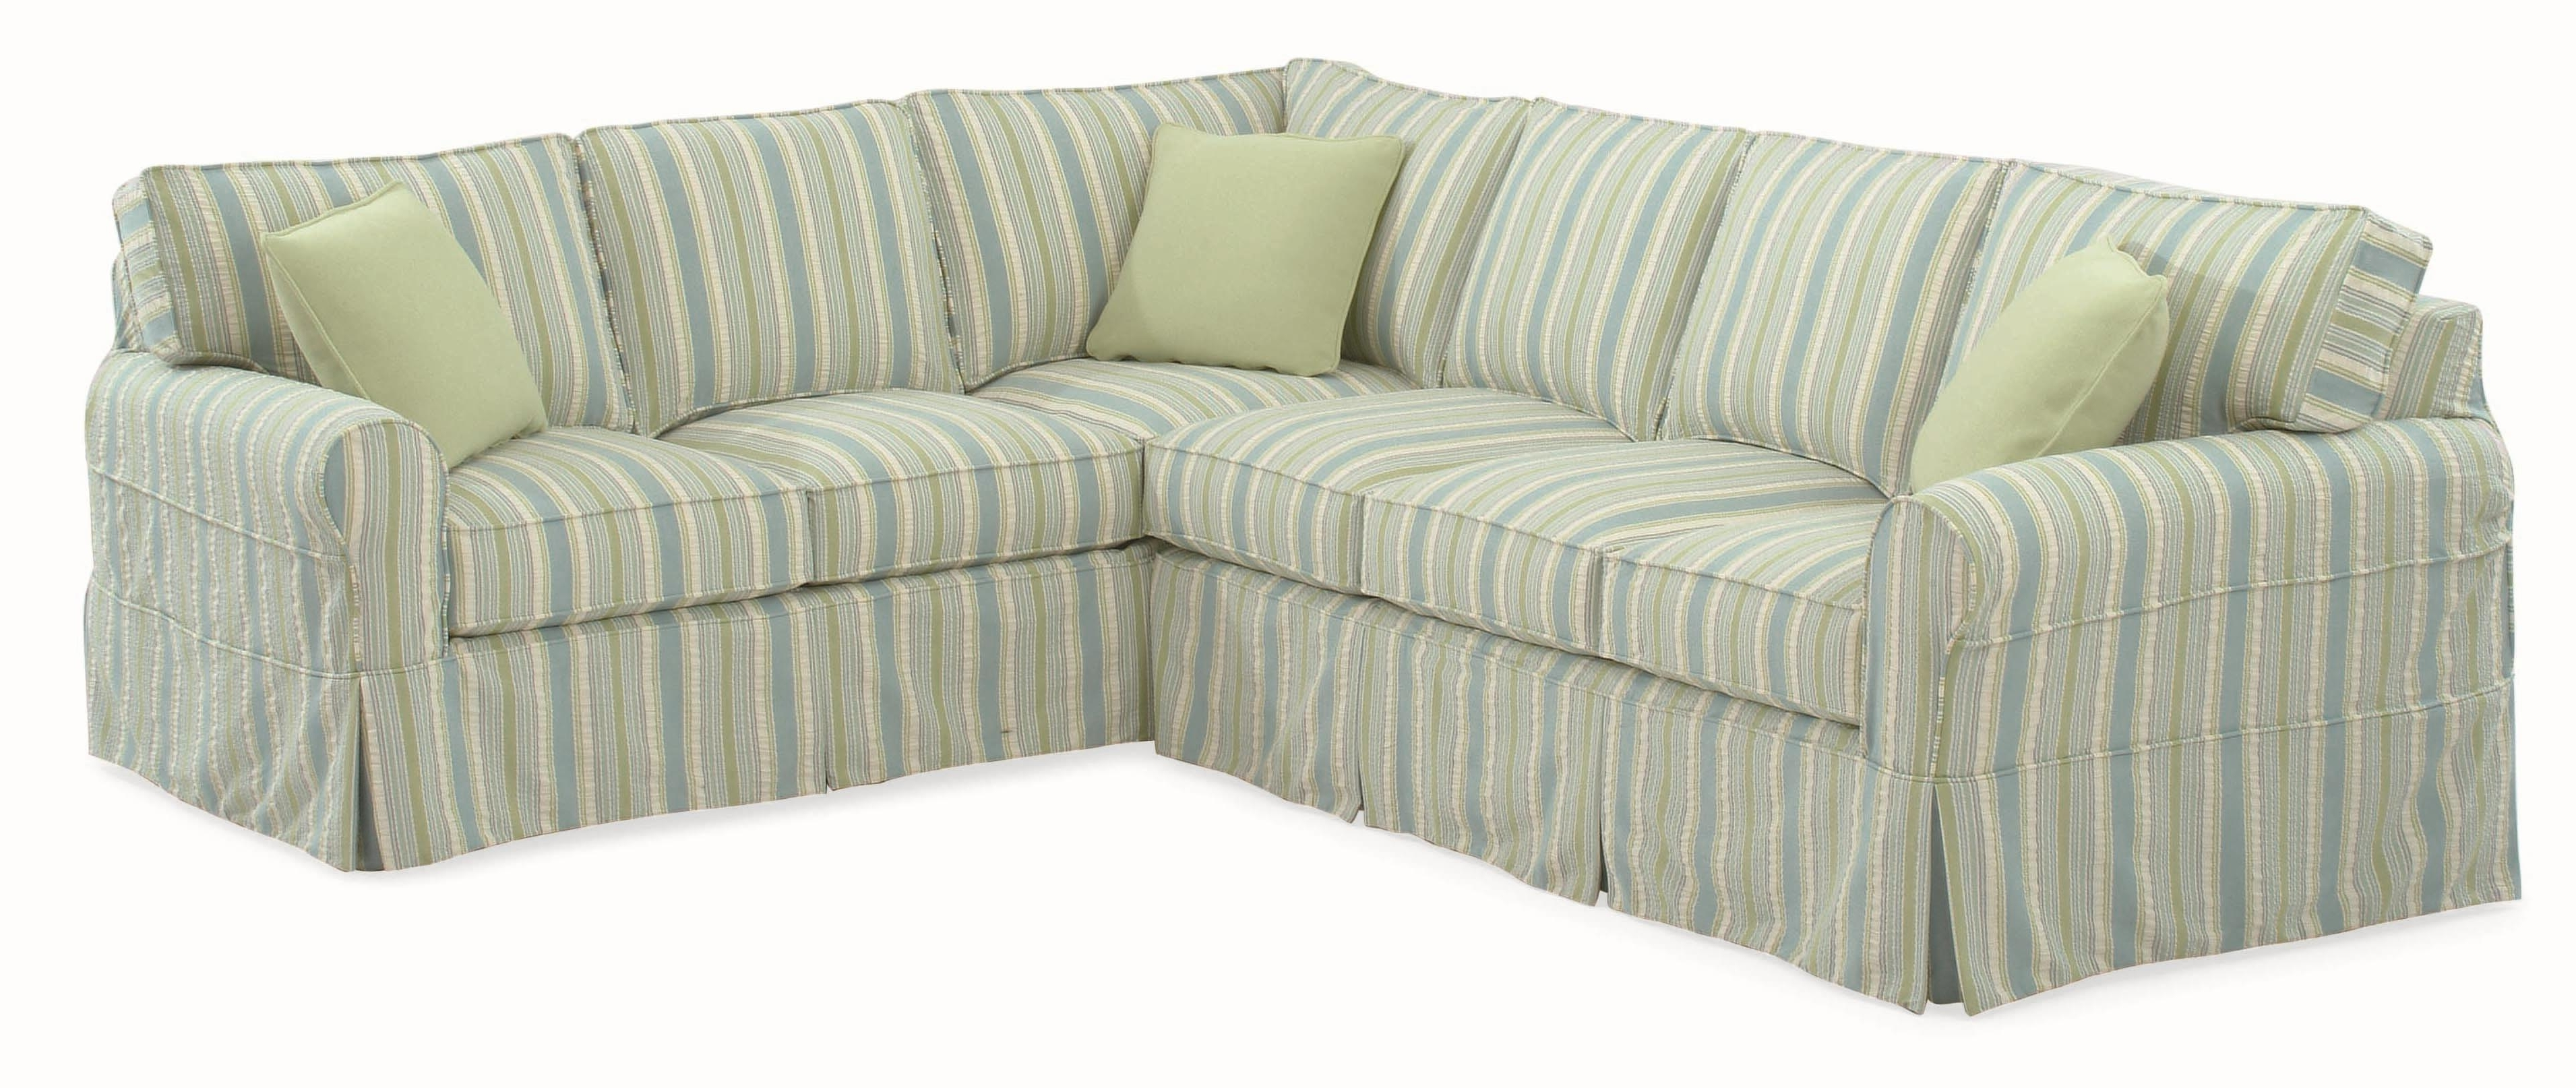 Latest Braxton Sofas For Braxton Culler 728 Casual Sectional Sofa With Rolled Arms And (View 7 of 20)